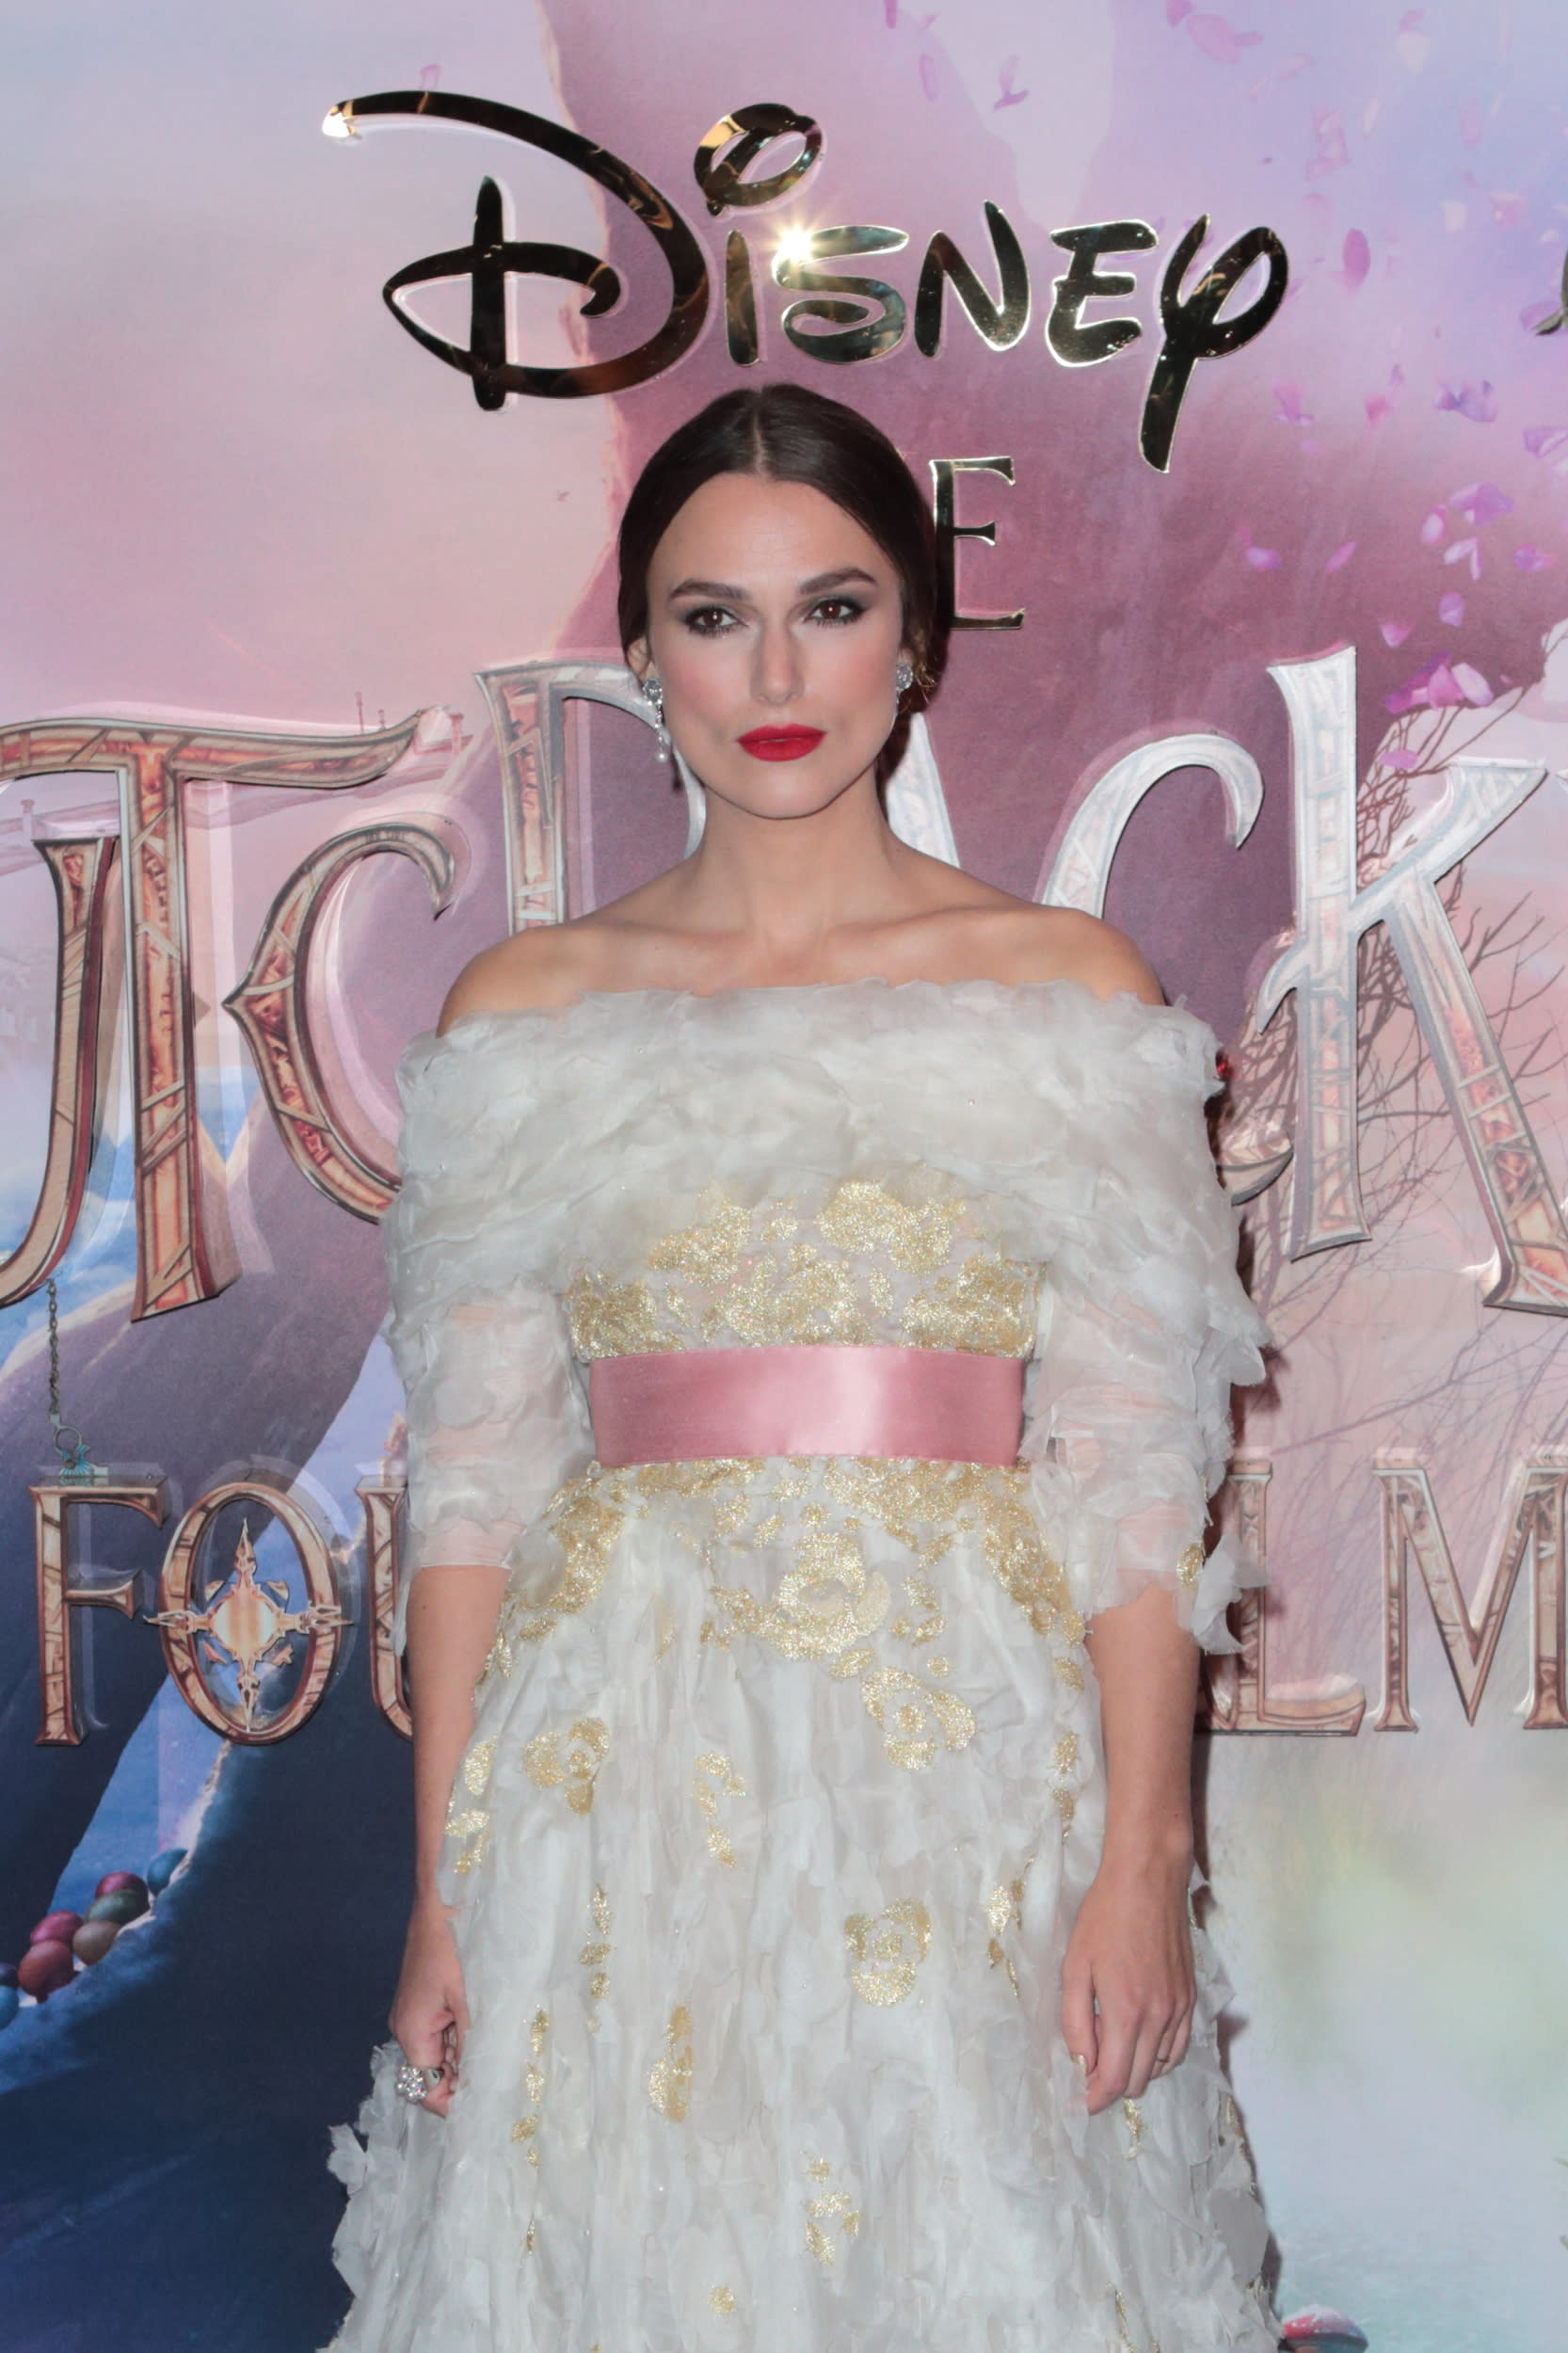 LONDON, UNITED KINGDOM - NOVEMBER 01: Keira Knightley attends the European Premiere of Disney's 'The Nutcracker And The Four Realms' at Vue Westfield on November 1, 2018 in London, England.  PHOTOGRAPH BY Jamy / Barcroft Images (Photo credit should read Jamy / Barcroft Media via Getty Images)